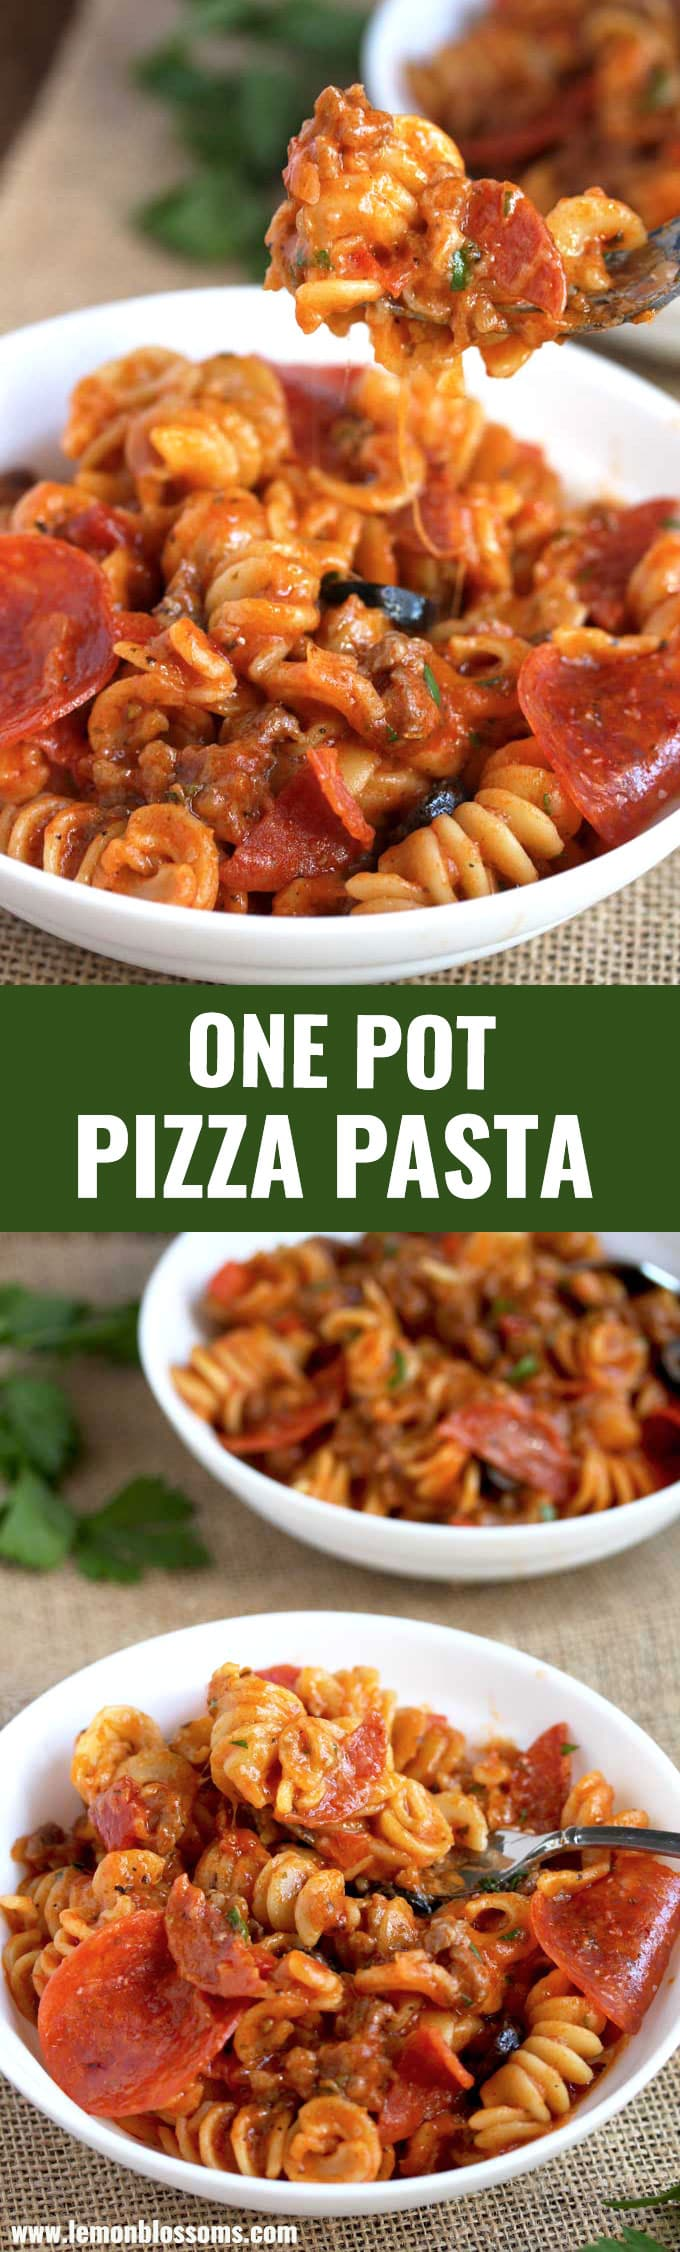 This Pizza Pasta combines all the great flavors of your favorite pizza in an easy 30 minutes, one pot pasta dish! This cheesy pizza casserole is kid friendly and always a family dinner favorite! #recipe #casserole #comfortfoods #pepperoni #cheesy #easy #pasta